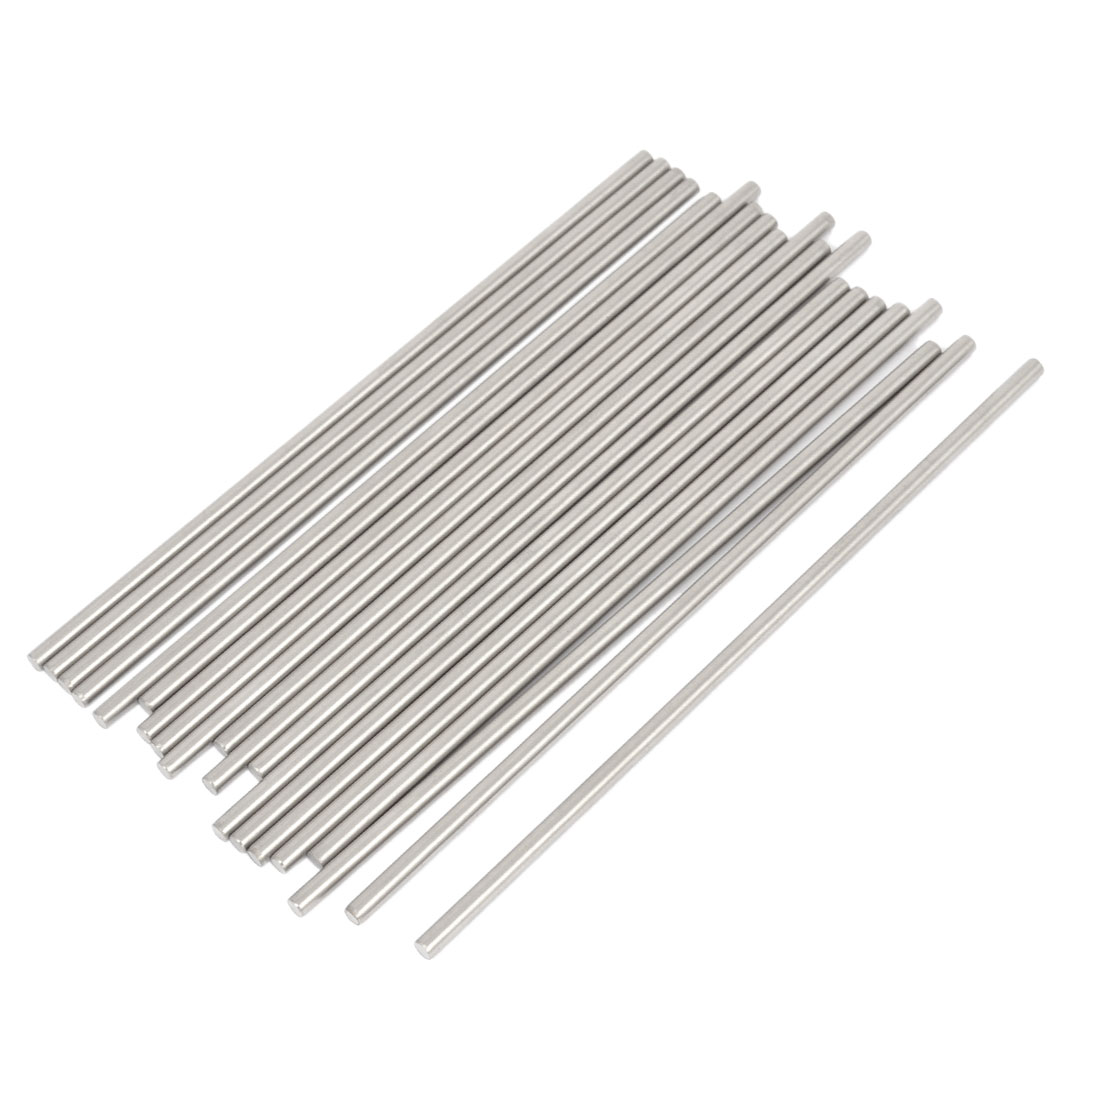 20 Pcs RC Airplane Model Part Stainless Steel Round Rods Axles Bars 3mm x 130mm